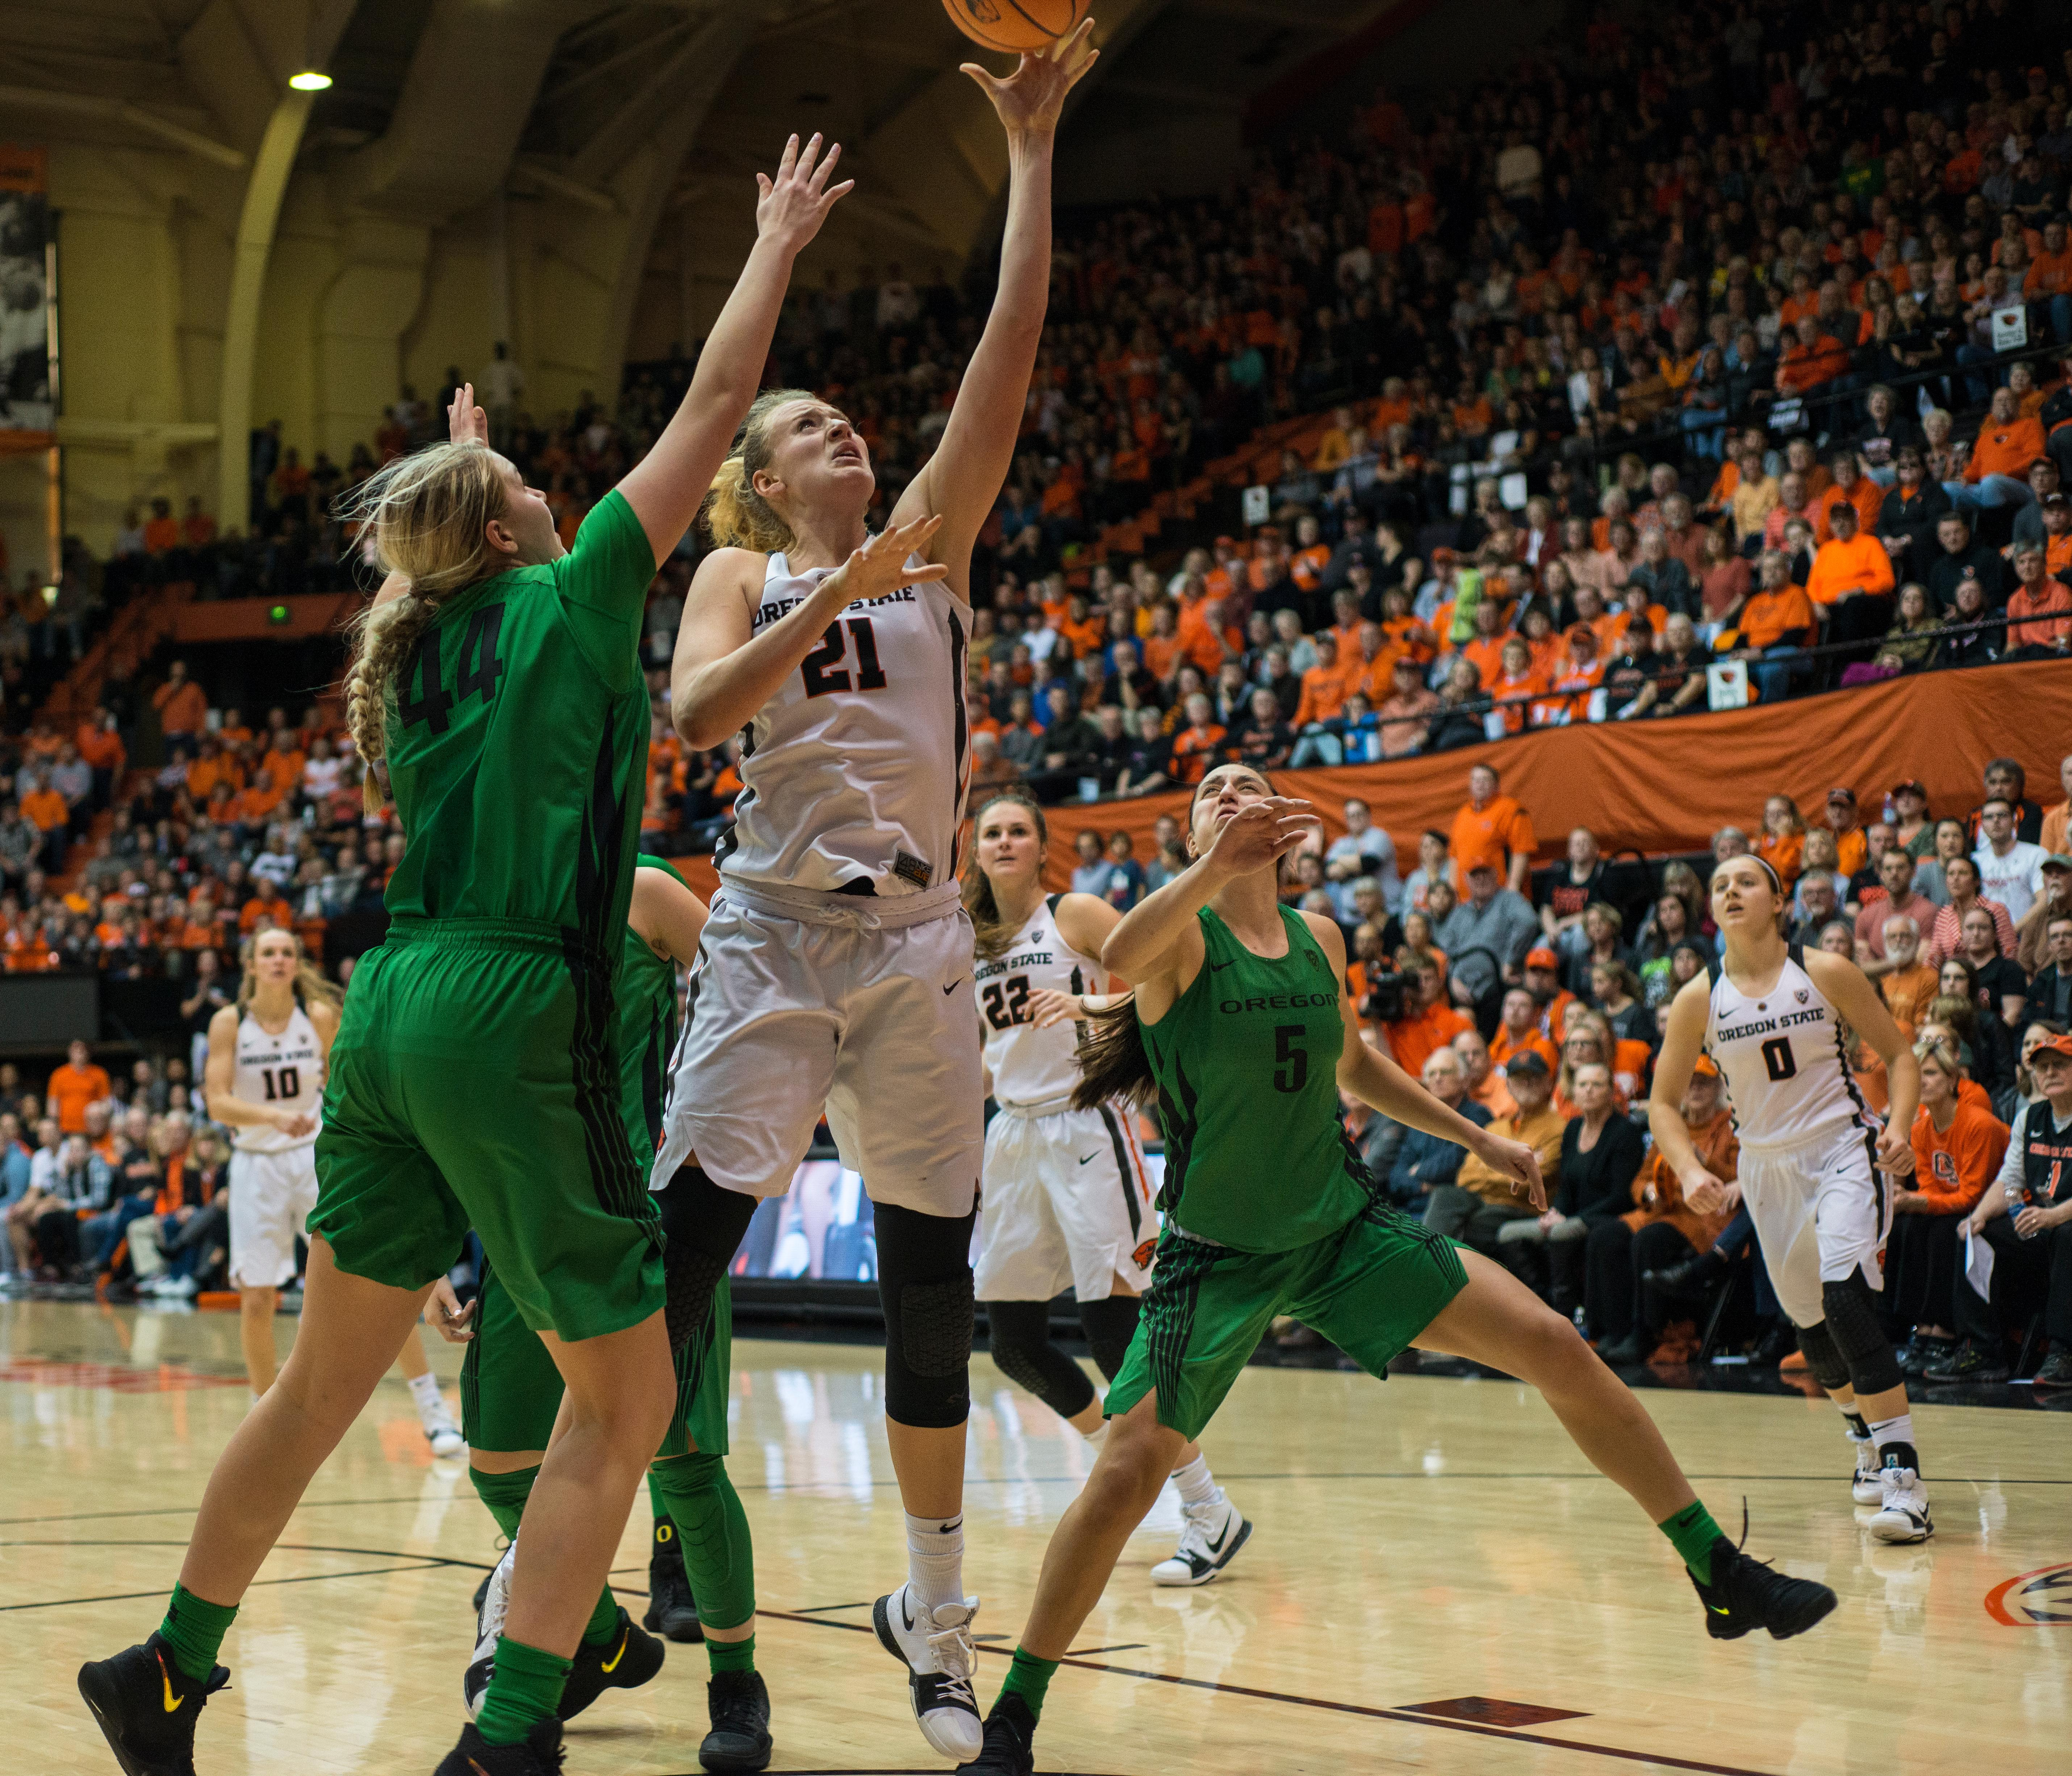 Oregon State Beavers forward Marie Gülich (#21) goes for a lay-up. The Oregon Ducks were defeated by the Oregon State Beavers 85-79 on Friday night in Corvallis. Sabrina Ionescu scored 35 points and Ruthy Hebard added 24. The Ducks will face the Beavers this Sunday at 5 p.m. at Matthew Knight Arena. Photo by Abigail Winn, Oregon News Lab